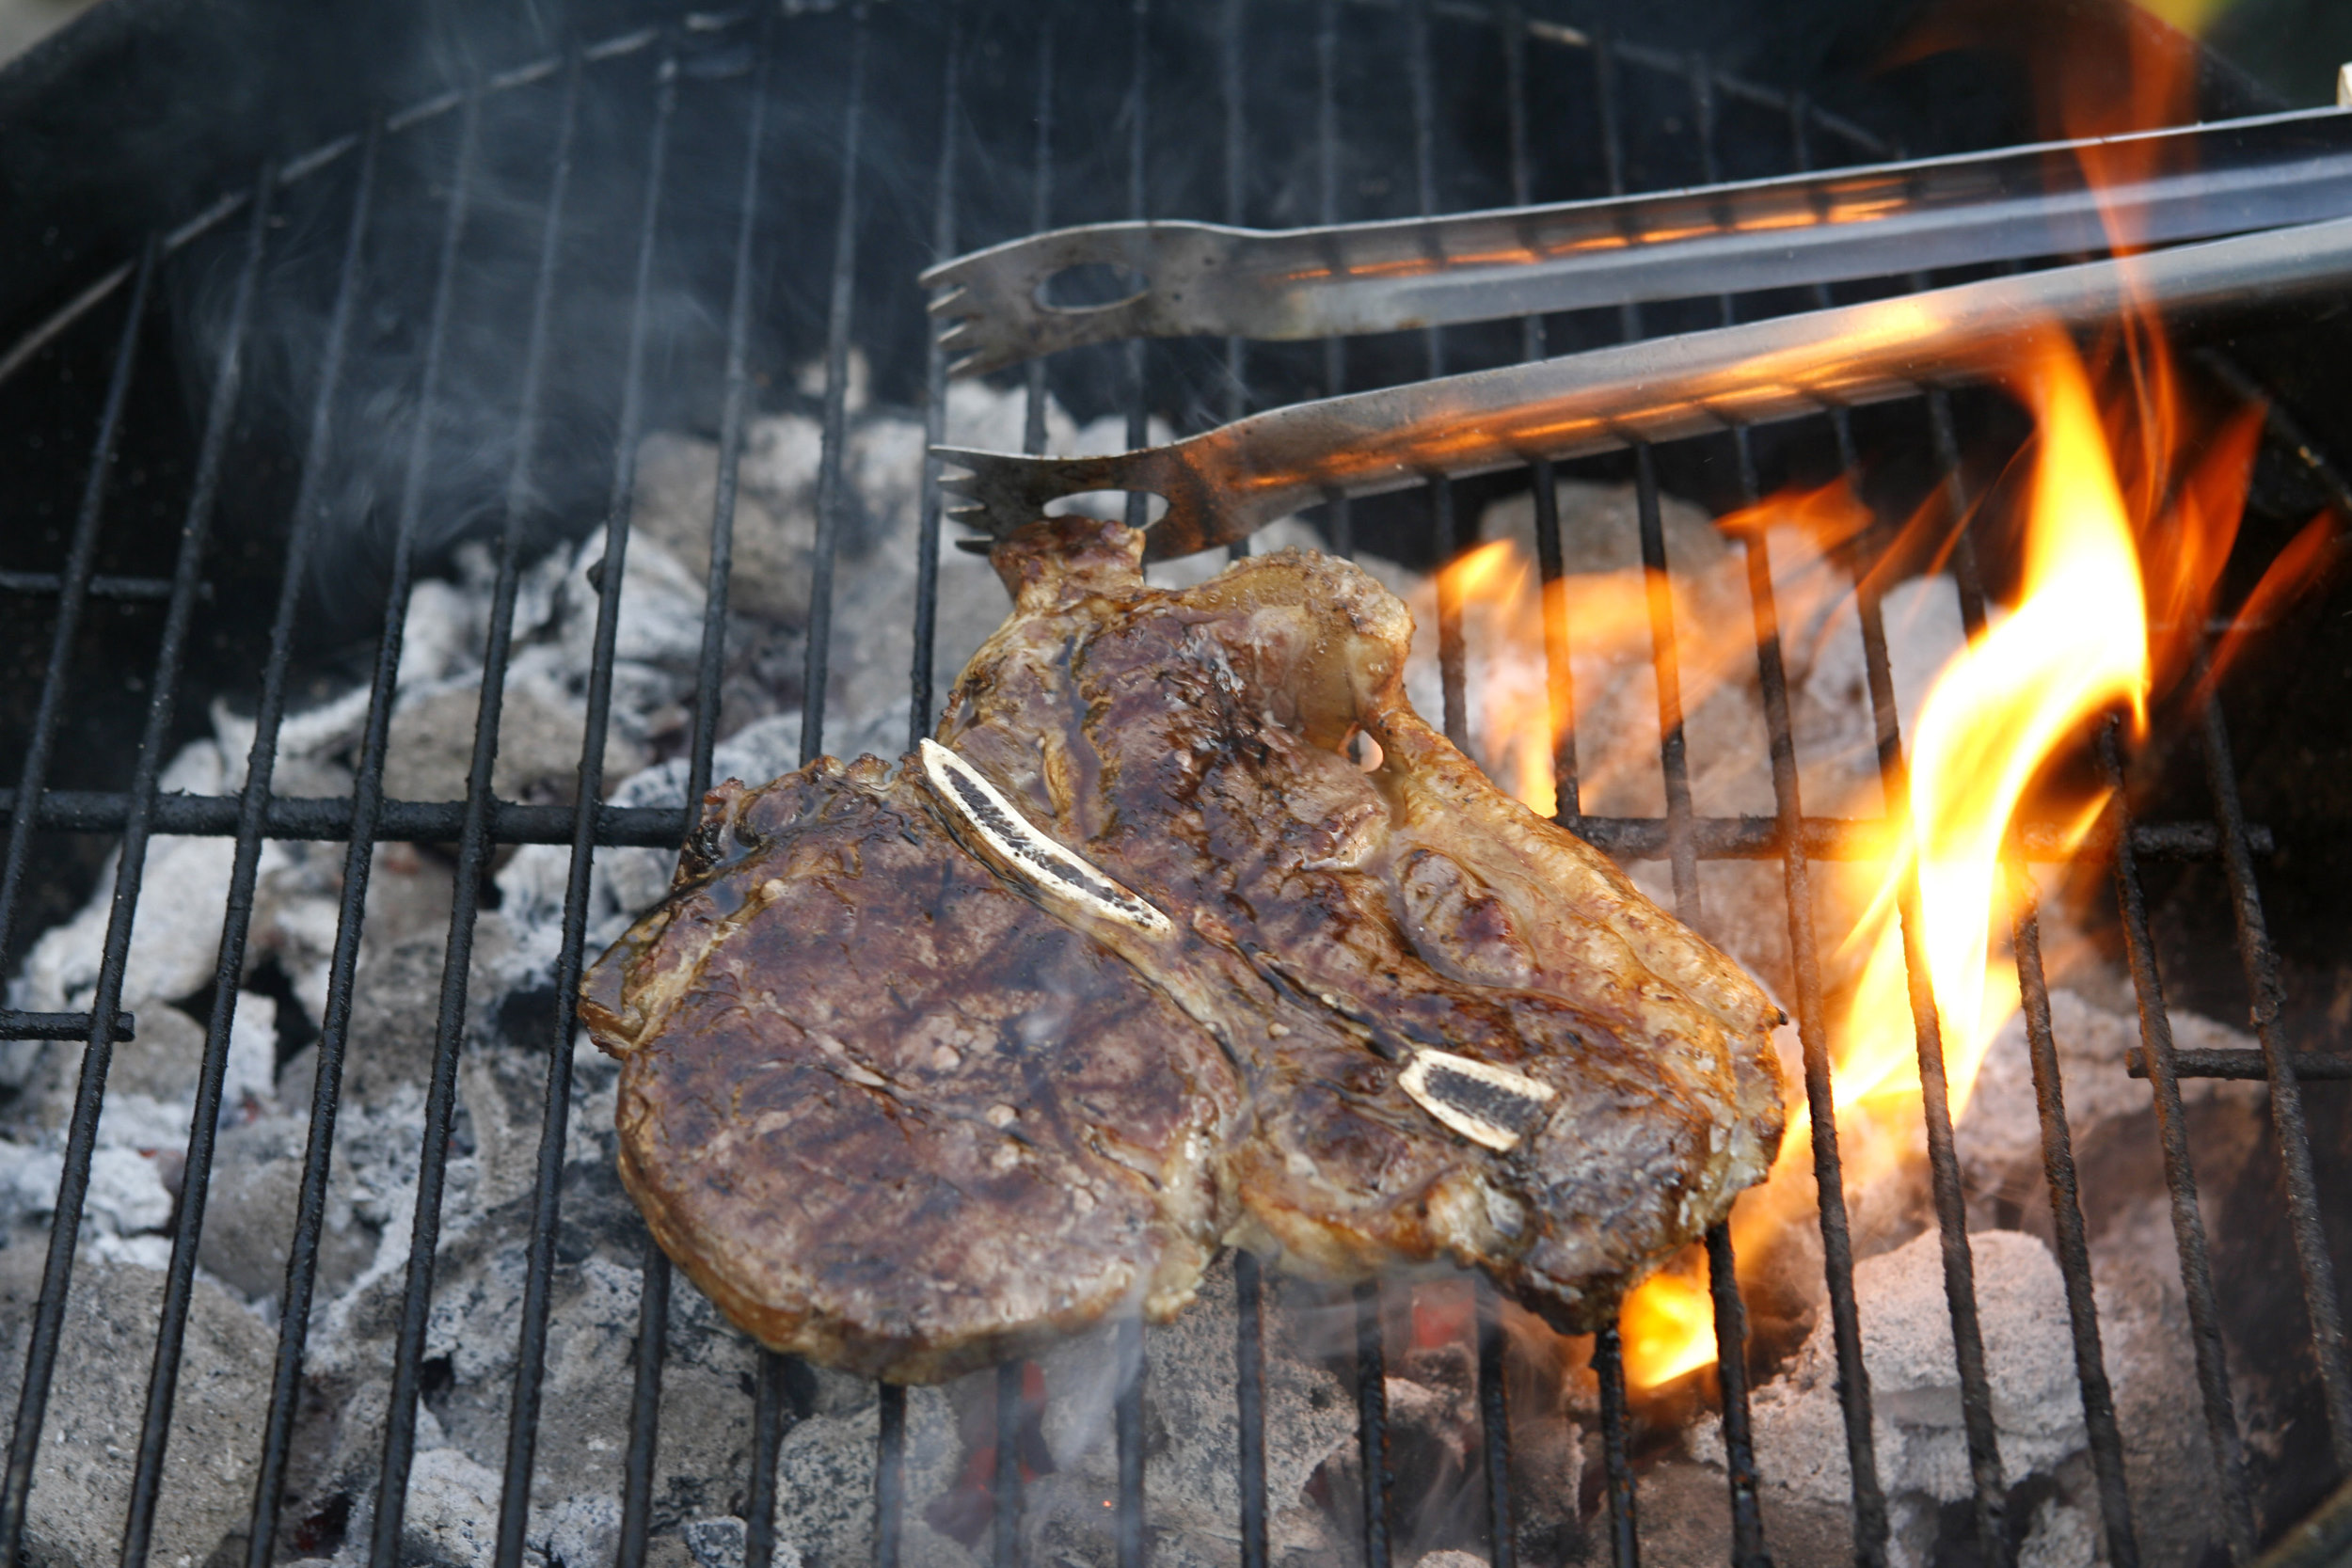 barbeque BBQ vlees meat grill briketten briquettes vuur fire